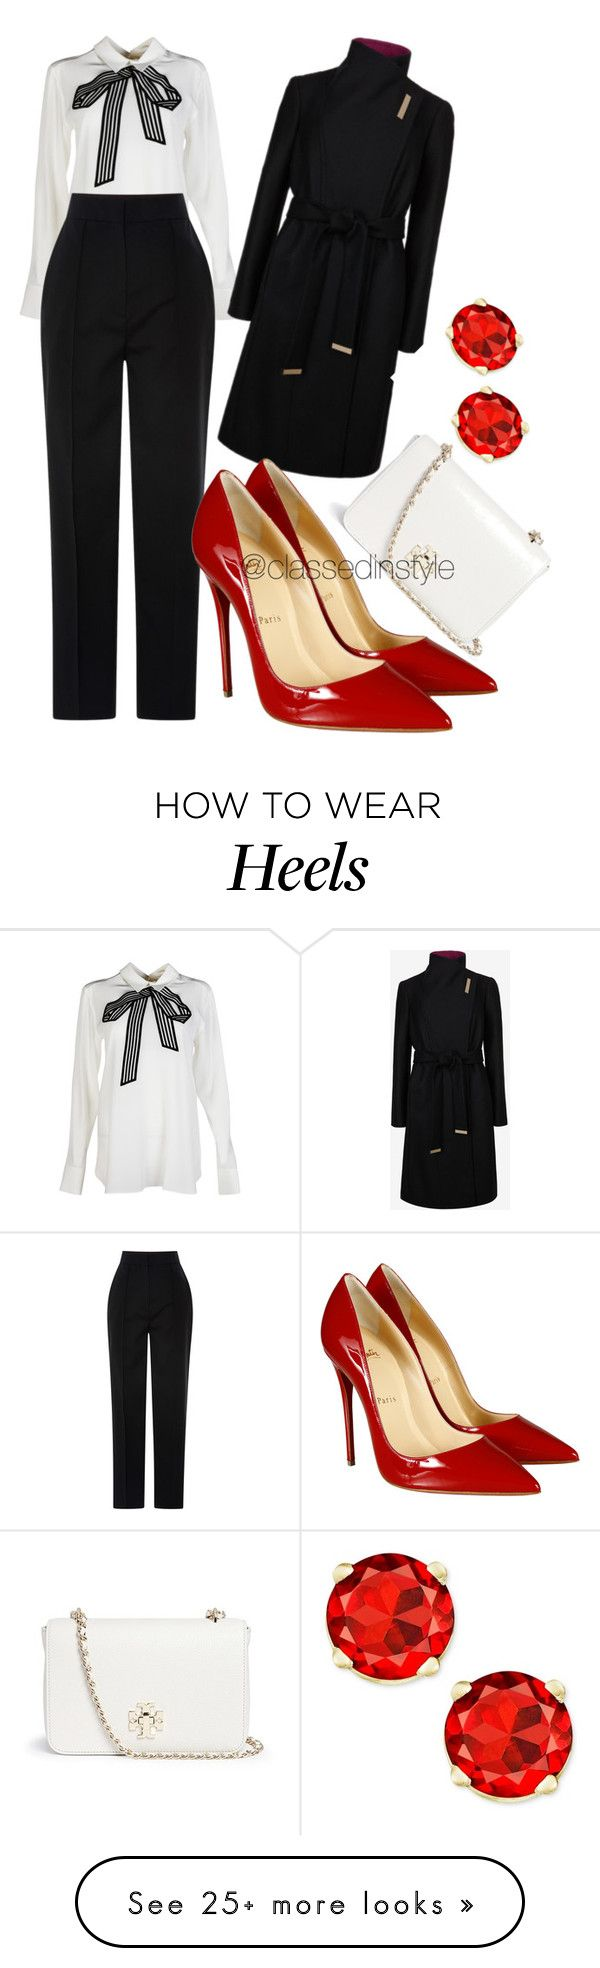 """Untitled #99"" by mama-liciuos on Polyvore featuring STELLA McCARTNEY, Ted Baker, Vika Gazinskaya, Christian Louboutin and Tory Burch"